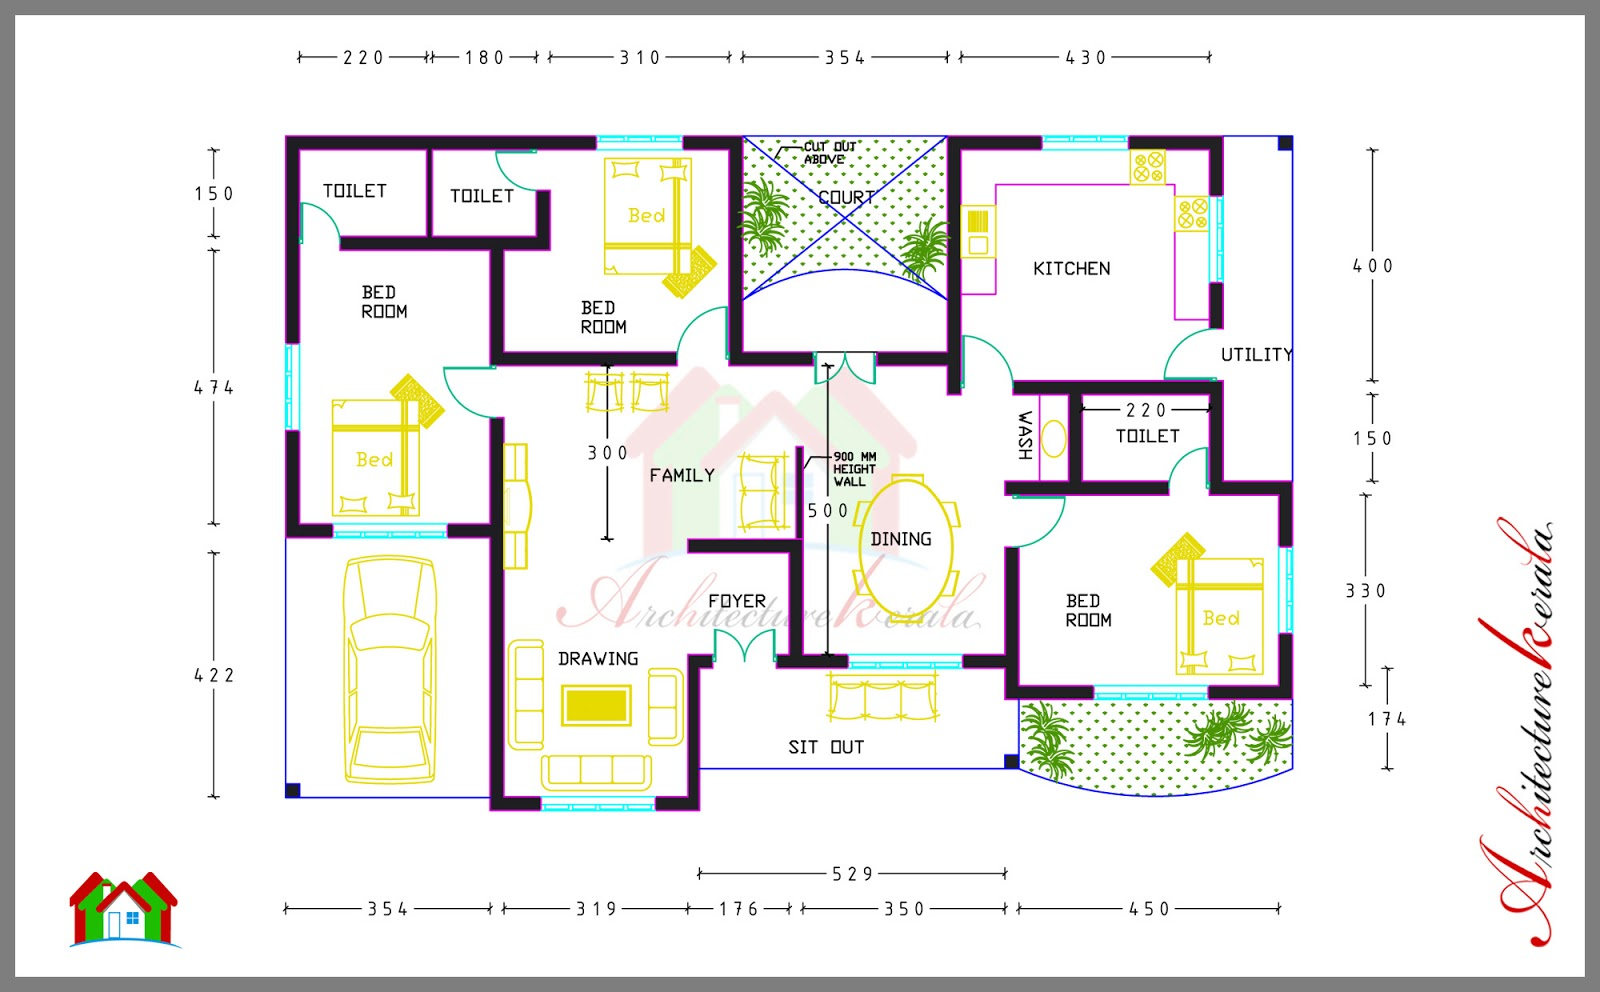 3 bed room house plan with room dimensions architecture Home layout planner